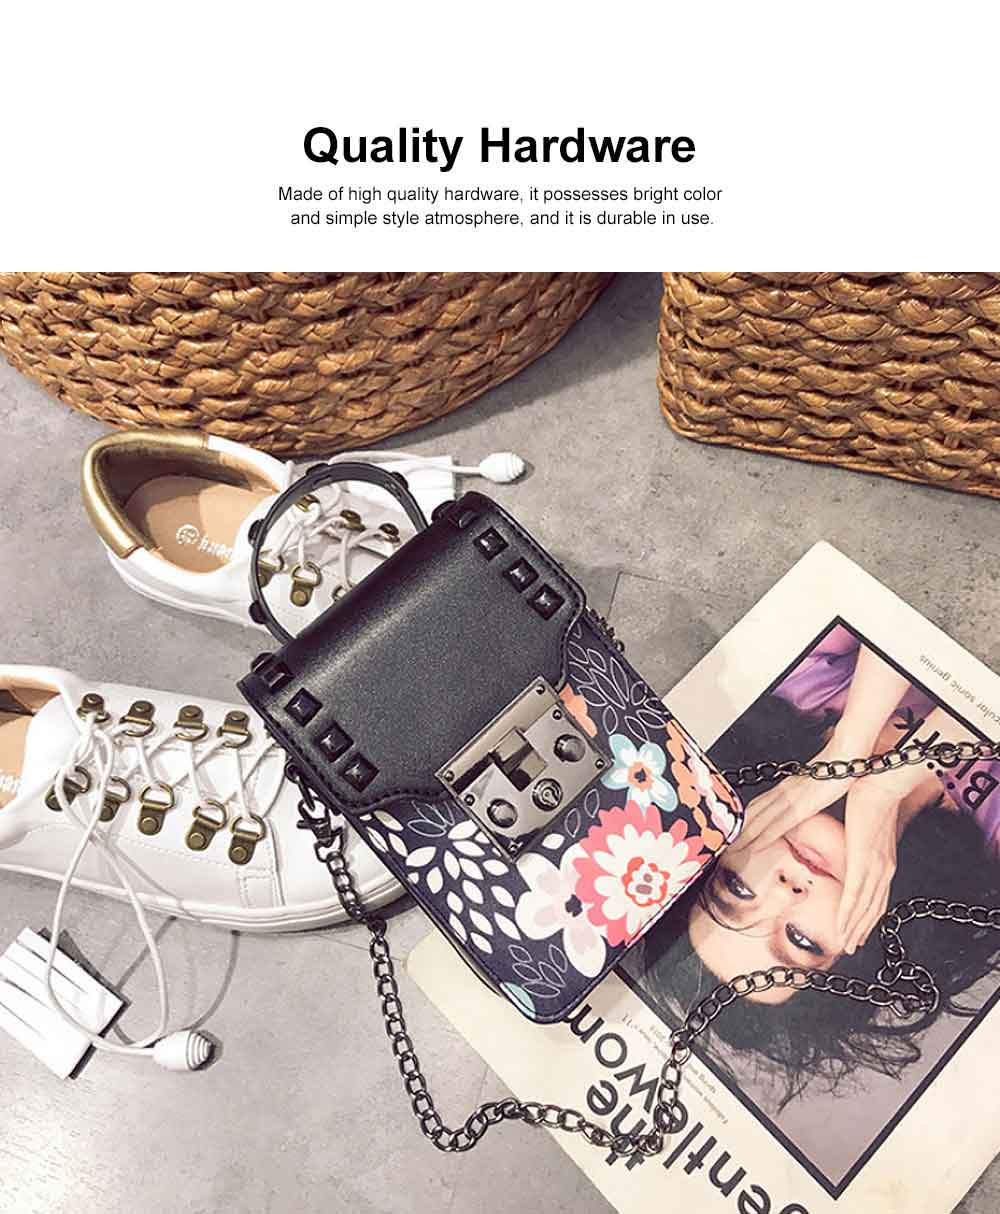 Personality Rivet Mobile Phone Shoulder Bag, All-match Mini Slanting Bag for Dating, Shopping, Daily Fahsion Mini Bag 3